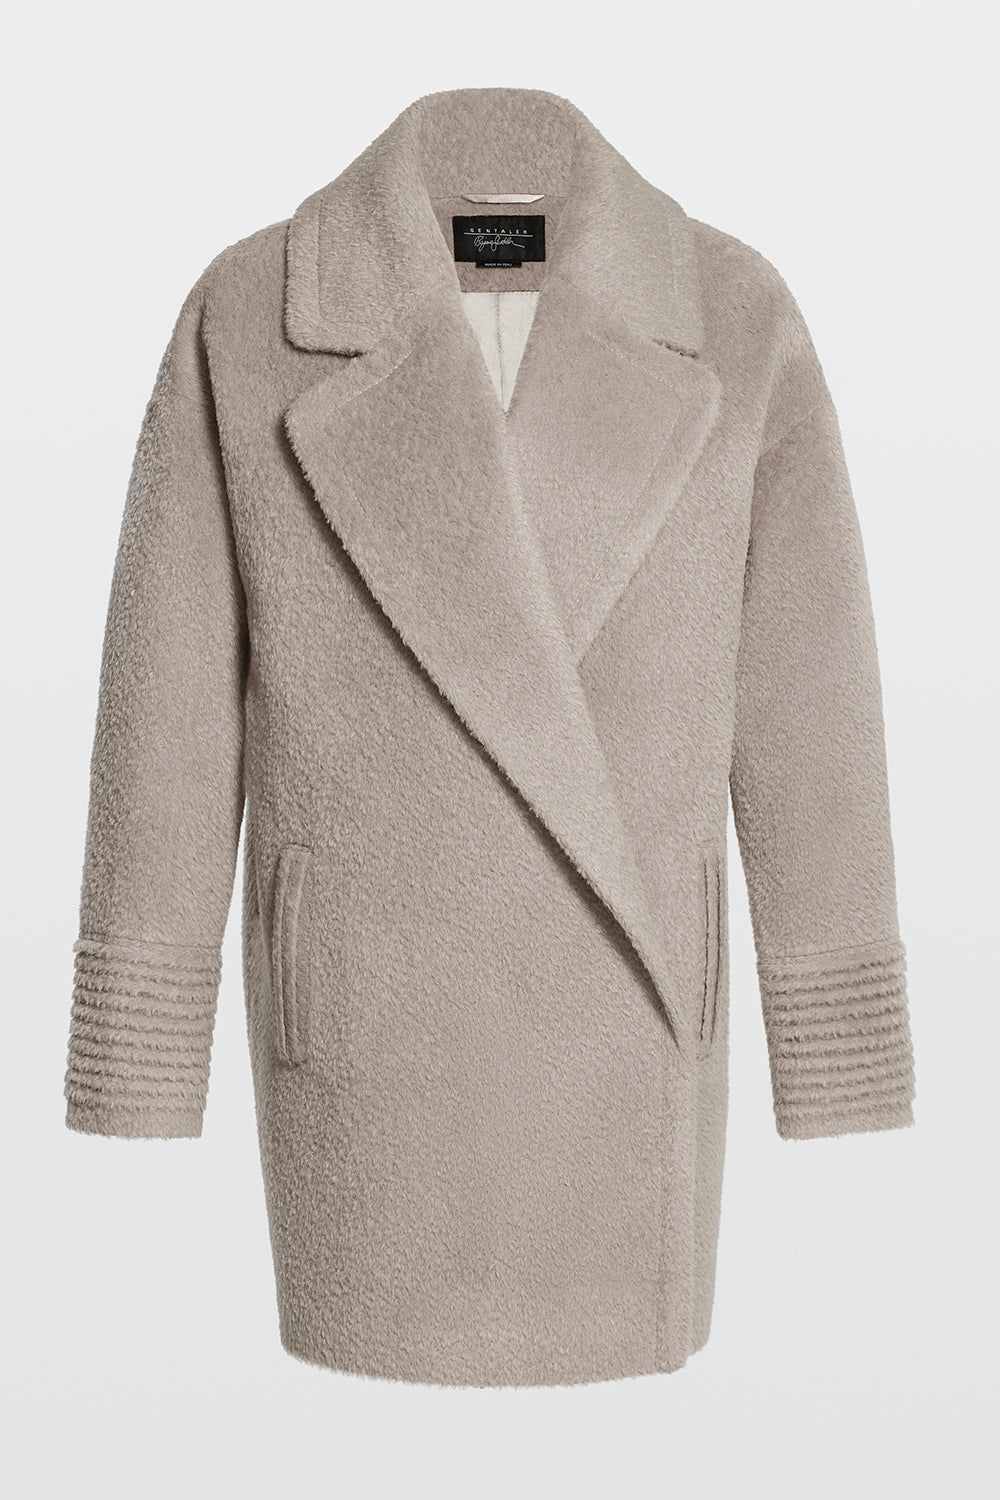 Sentaler Bouclé Alpaca Mid Length Oversized Notched Collar Coat featured in Bouclé Alpaca and available in Sand. Seen off model.